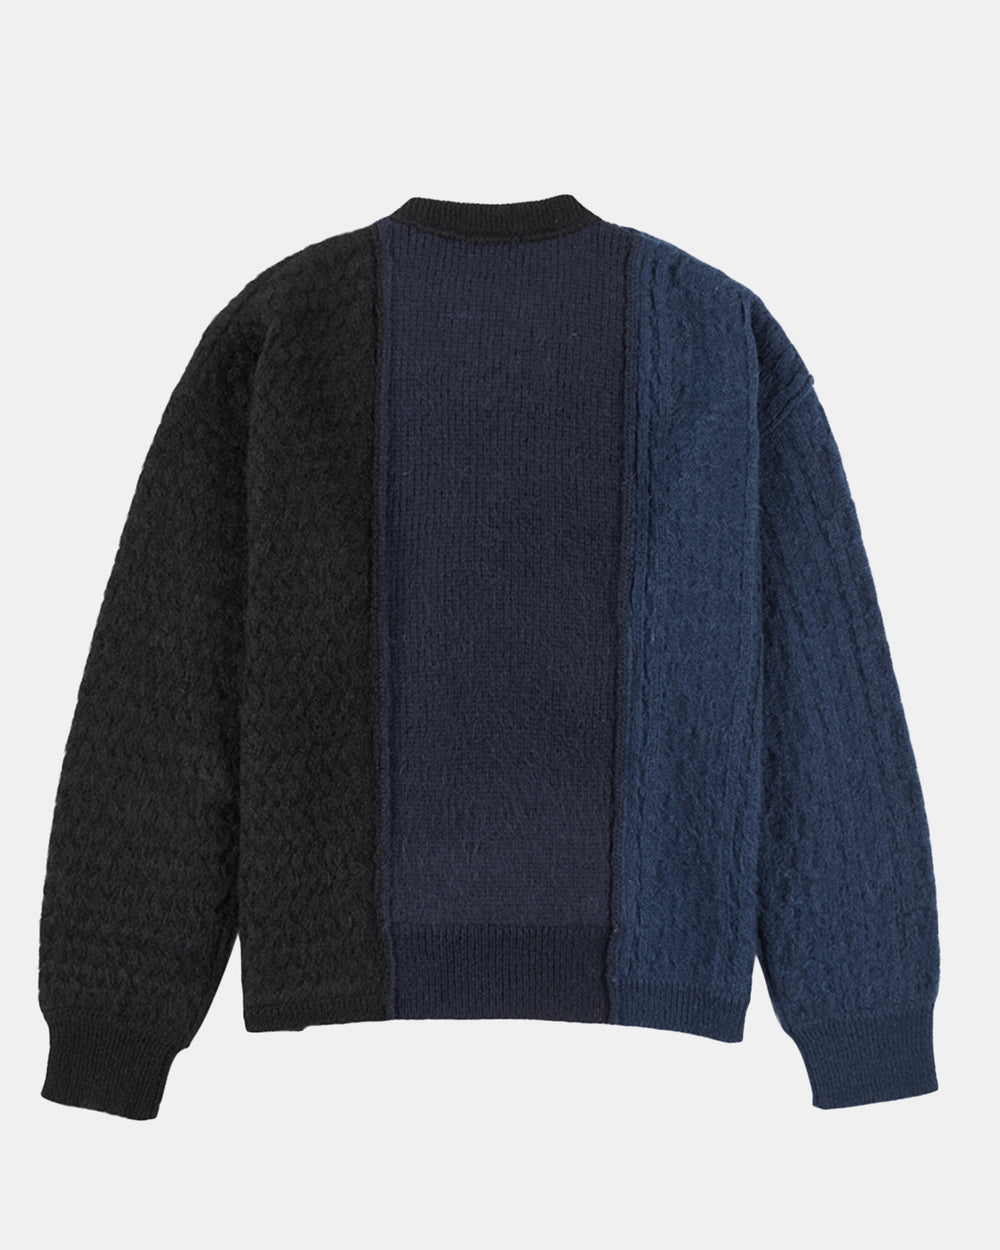 Andersson Bell - Women's Brushed Cable Oversized Sweater (Navy | Black)